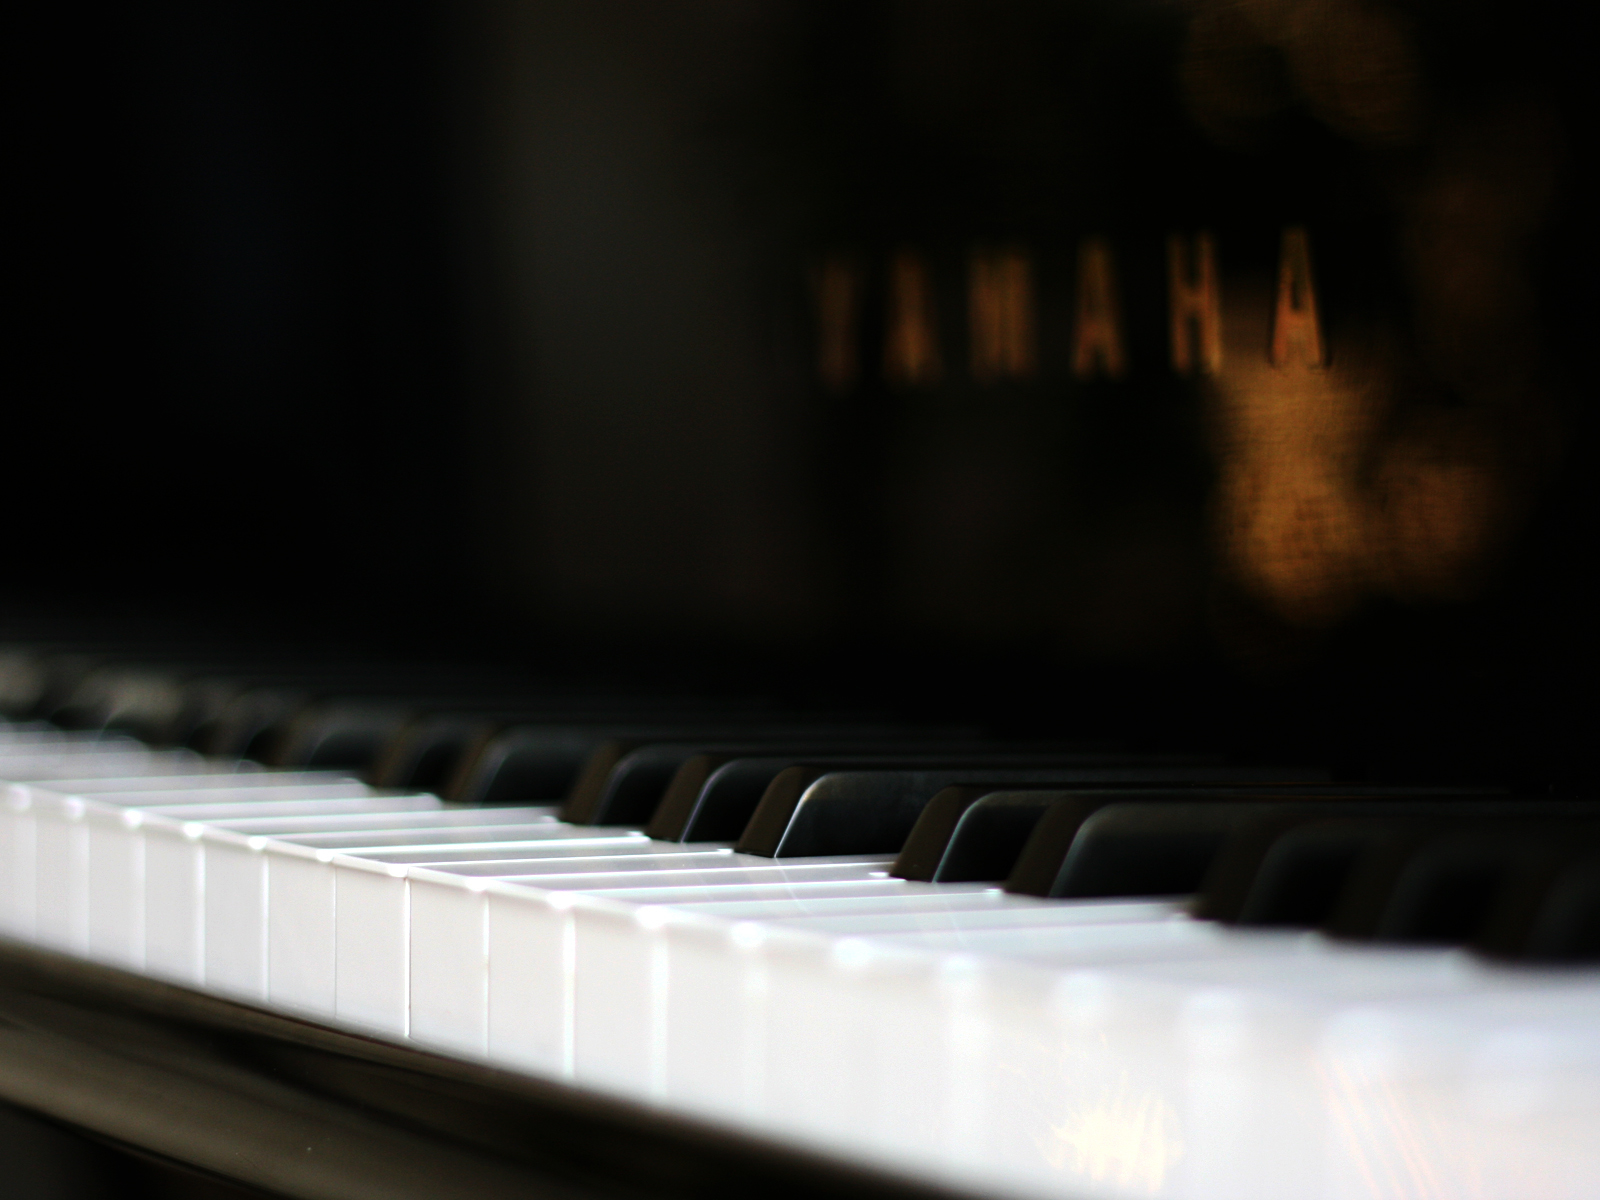 piano wallpaper ndash free - photo #46